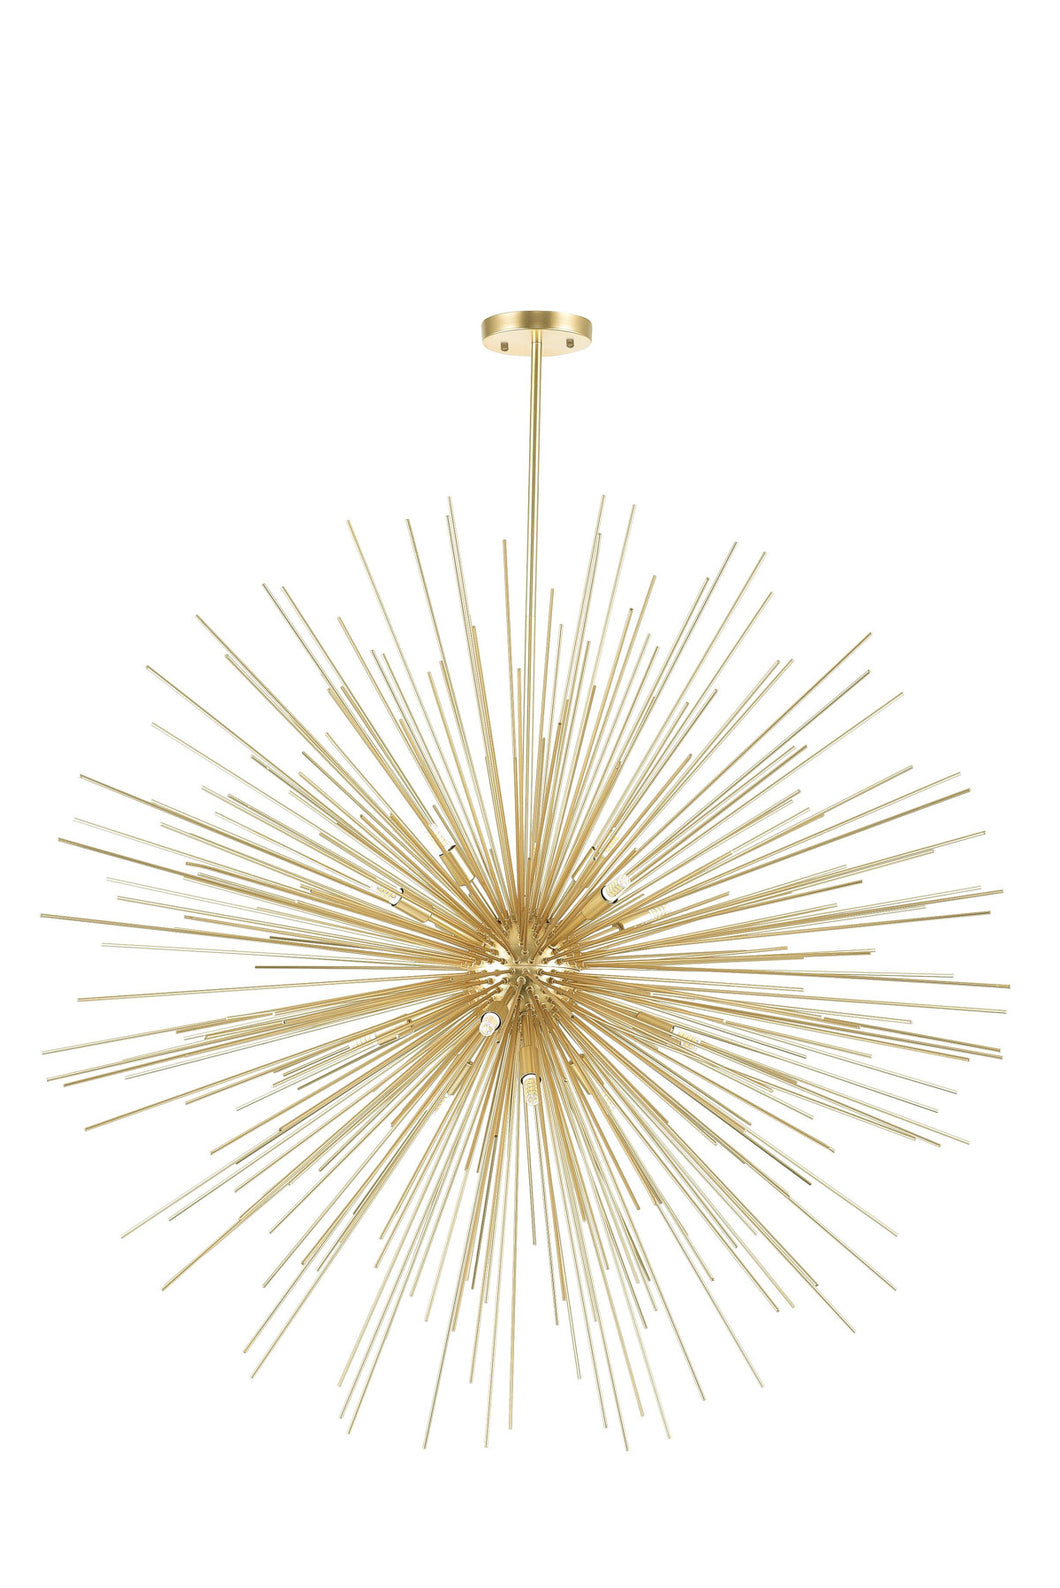 14 Light Chandelier with Gold Leaf Finish